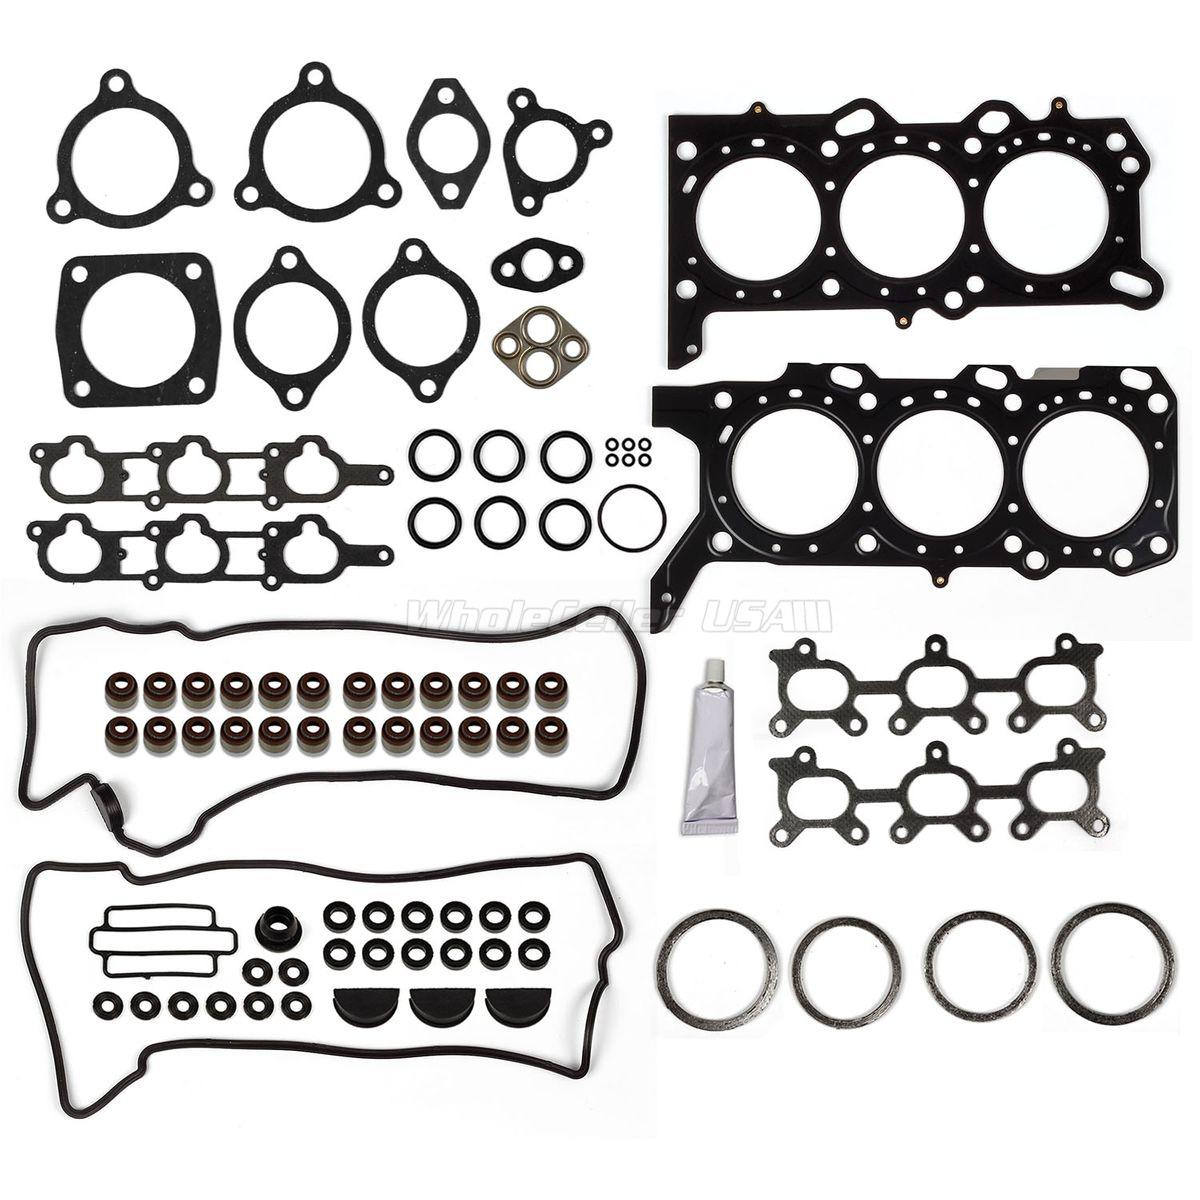 For 1999-2005 Suzuki-Chevrolet Head Gasket Set 2.5L V6 Eng Code H25A